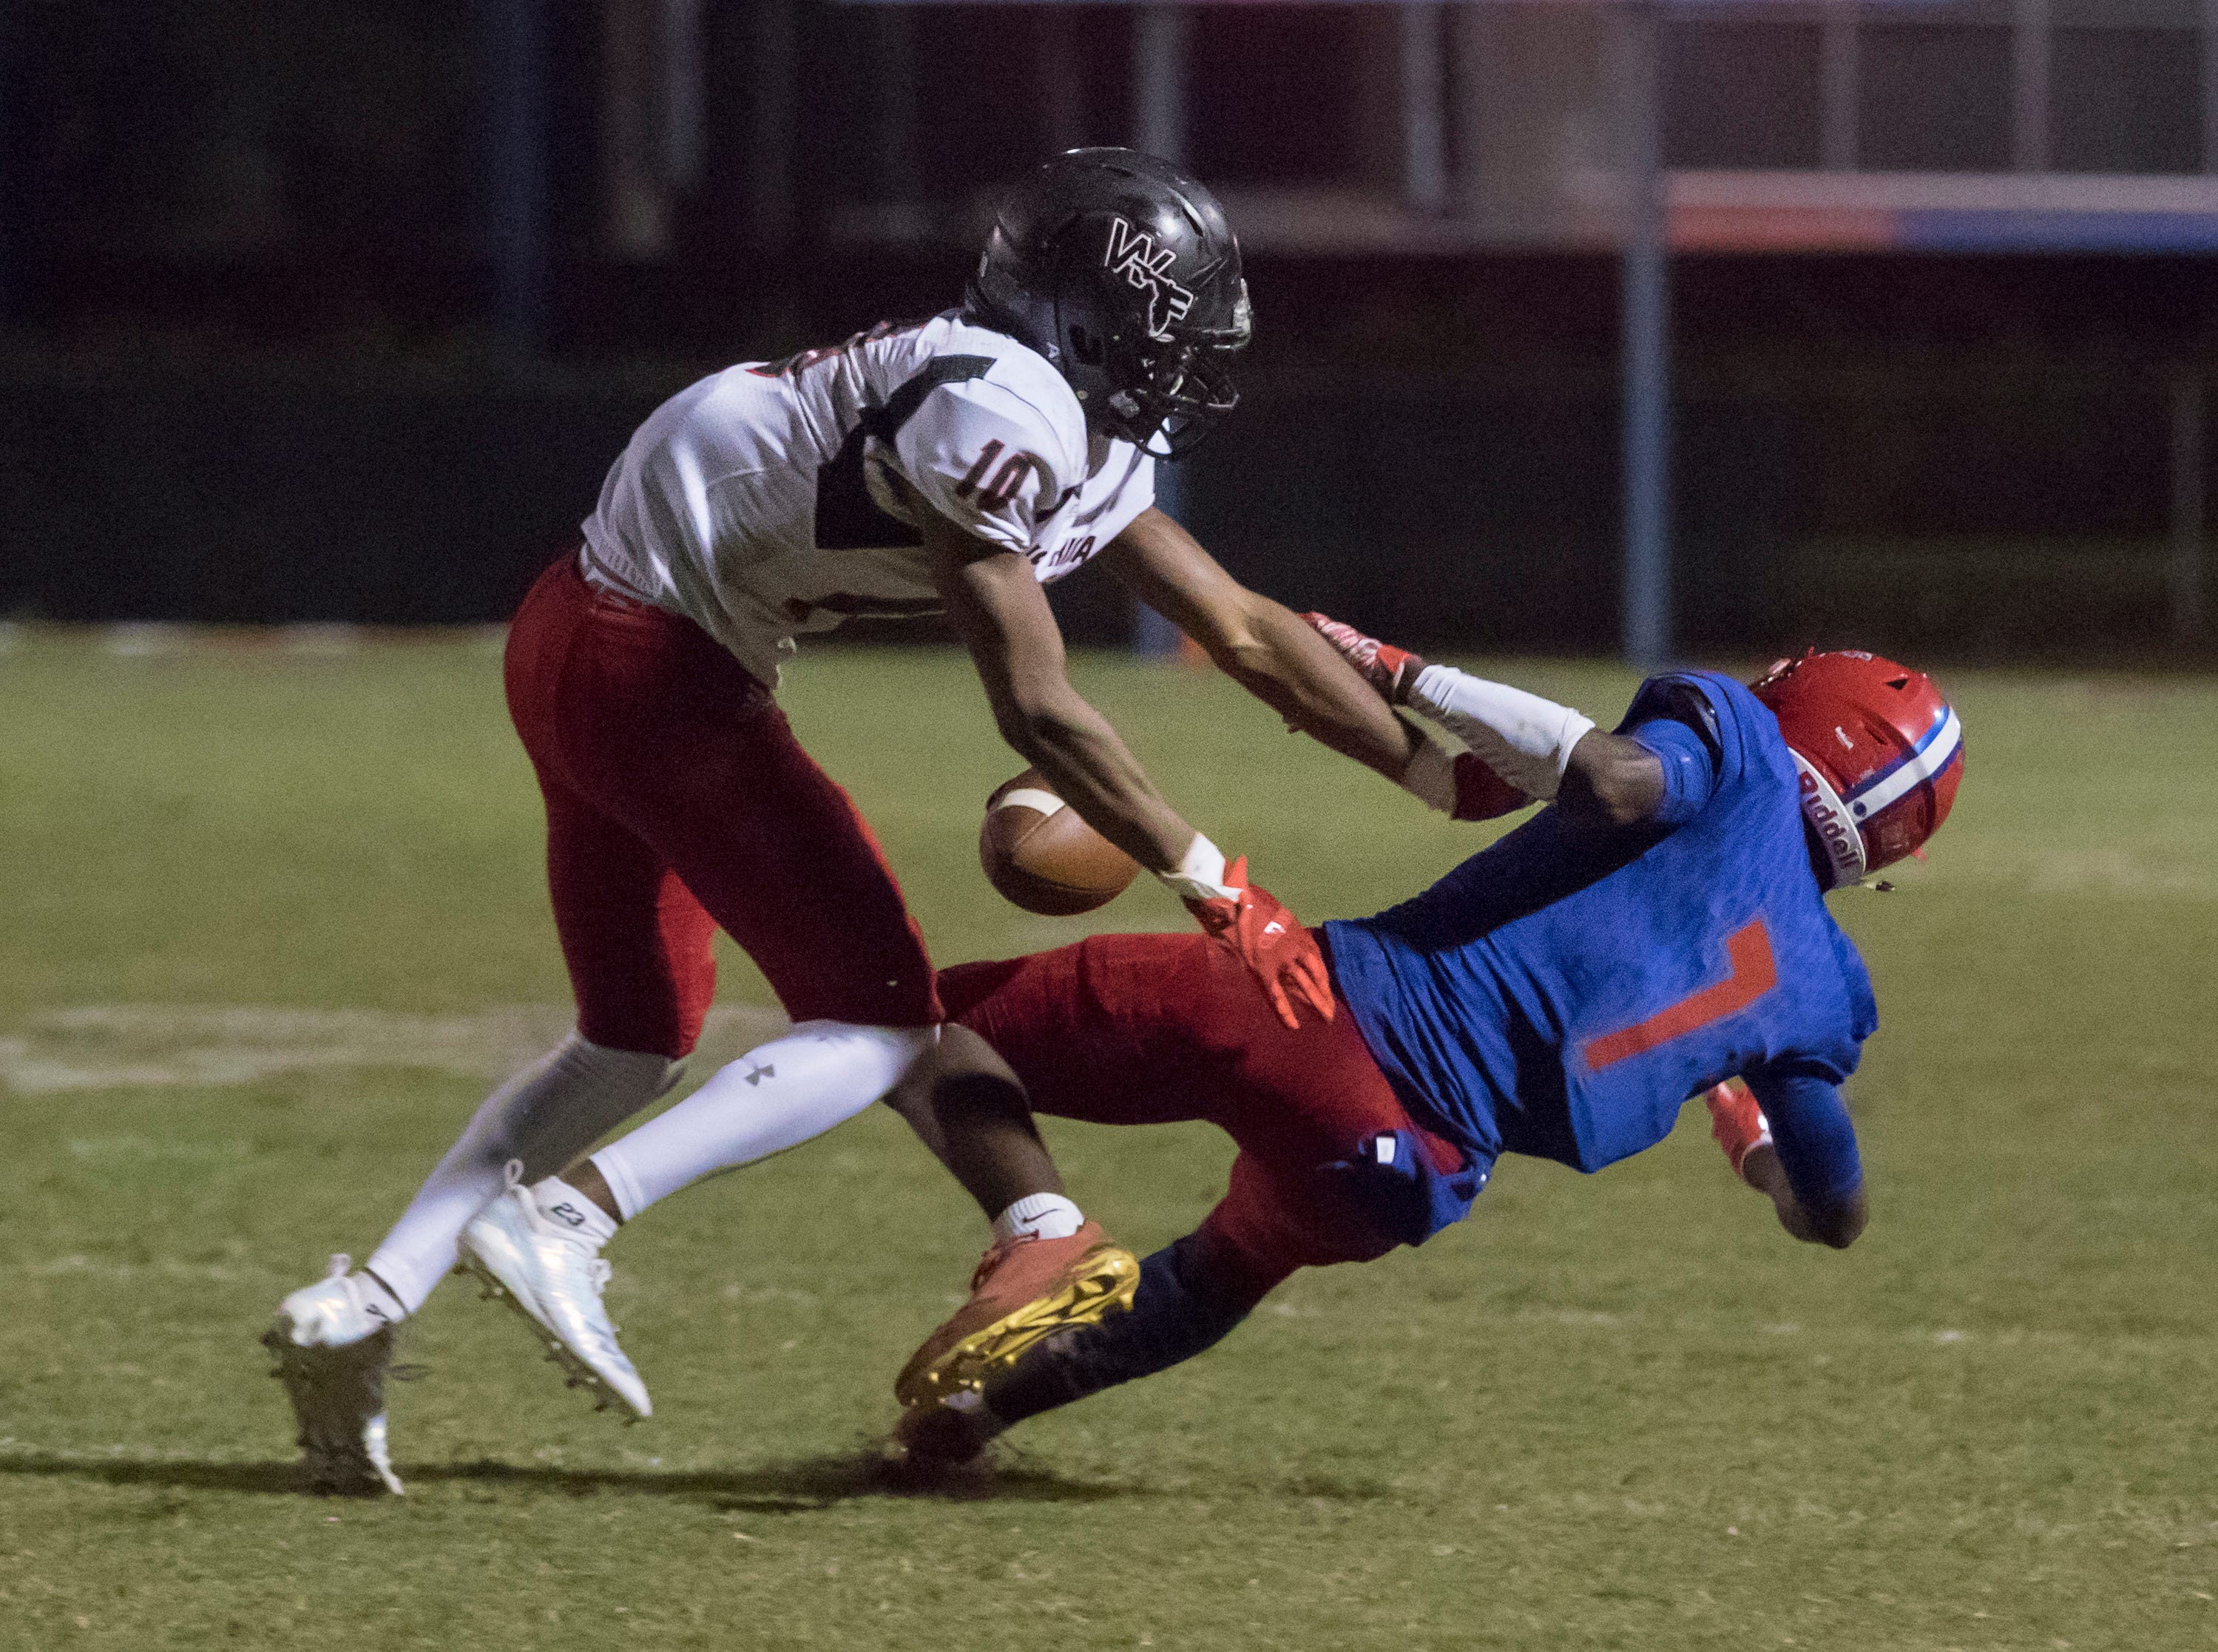 Donte Thompson (10) breaks up the pass to Tehrenzo Turner (7) during the West Florida vs Pine Forest football game at Pine Forest High School in Pensacola on Friday, October 5, 2018.